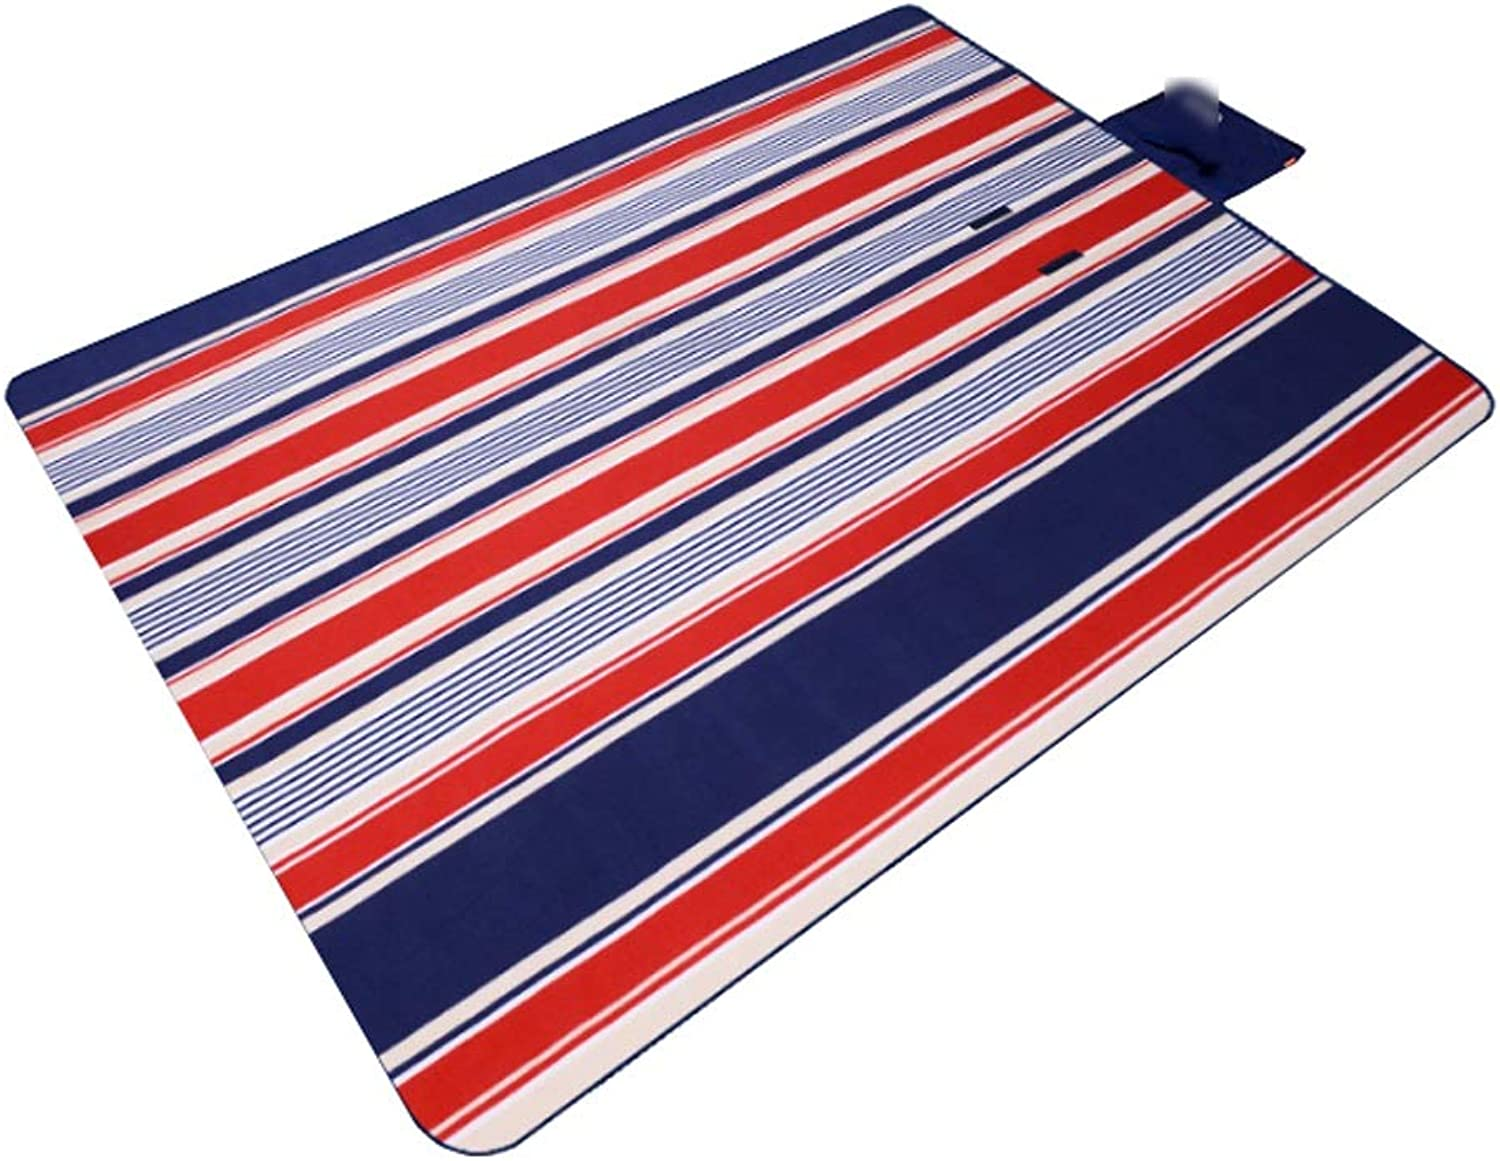 Picnic Mat Picnic Blanket Striped Handy Beach Mat with Strap Mildew Resistant and Waterproof for Picnic Beaches (color   C, Size   1.5x2M)